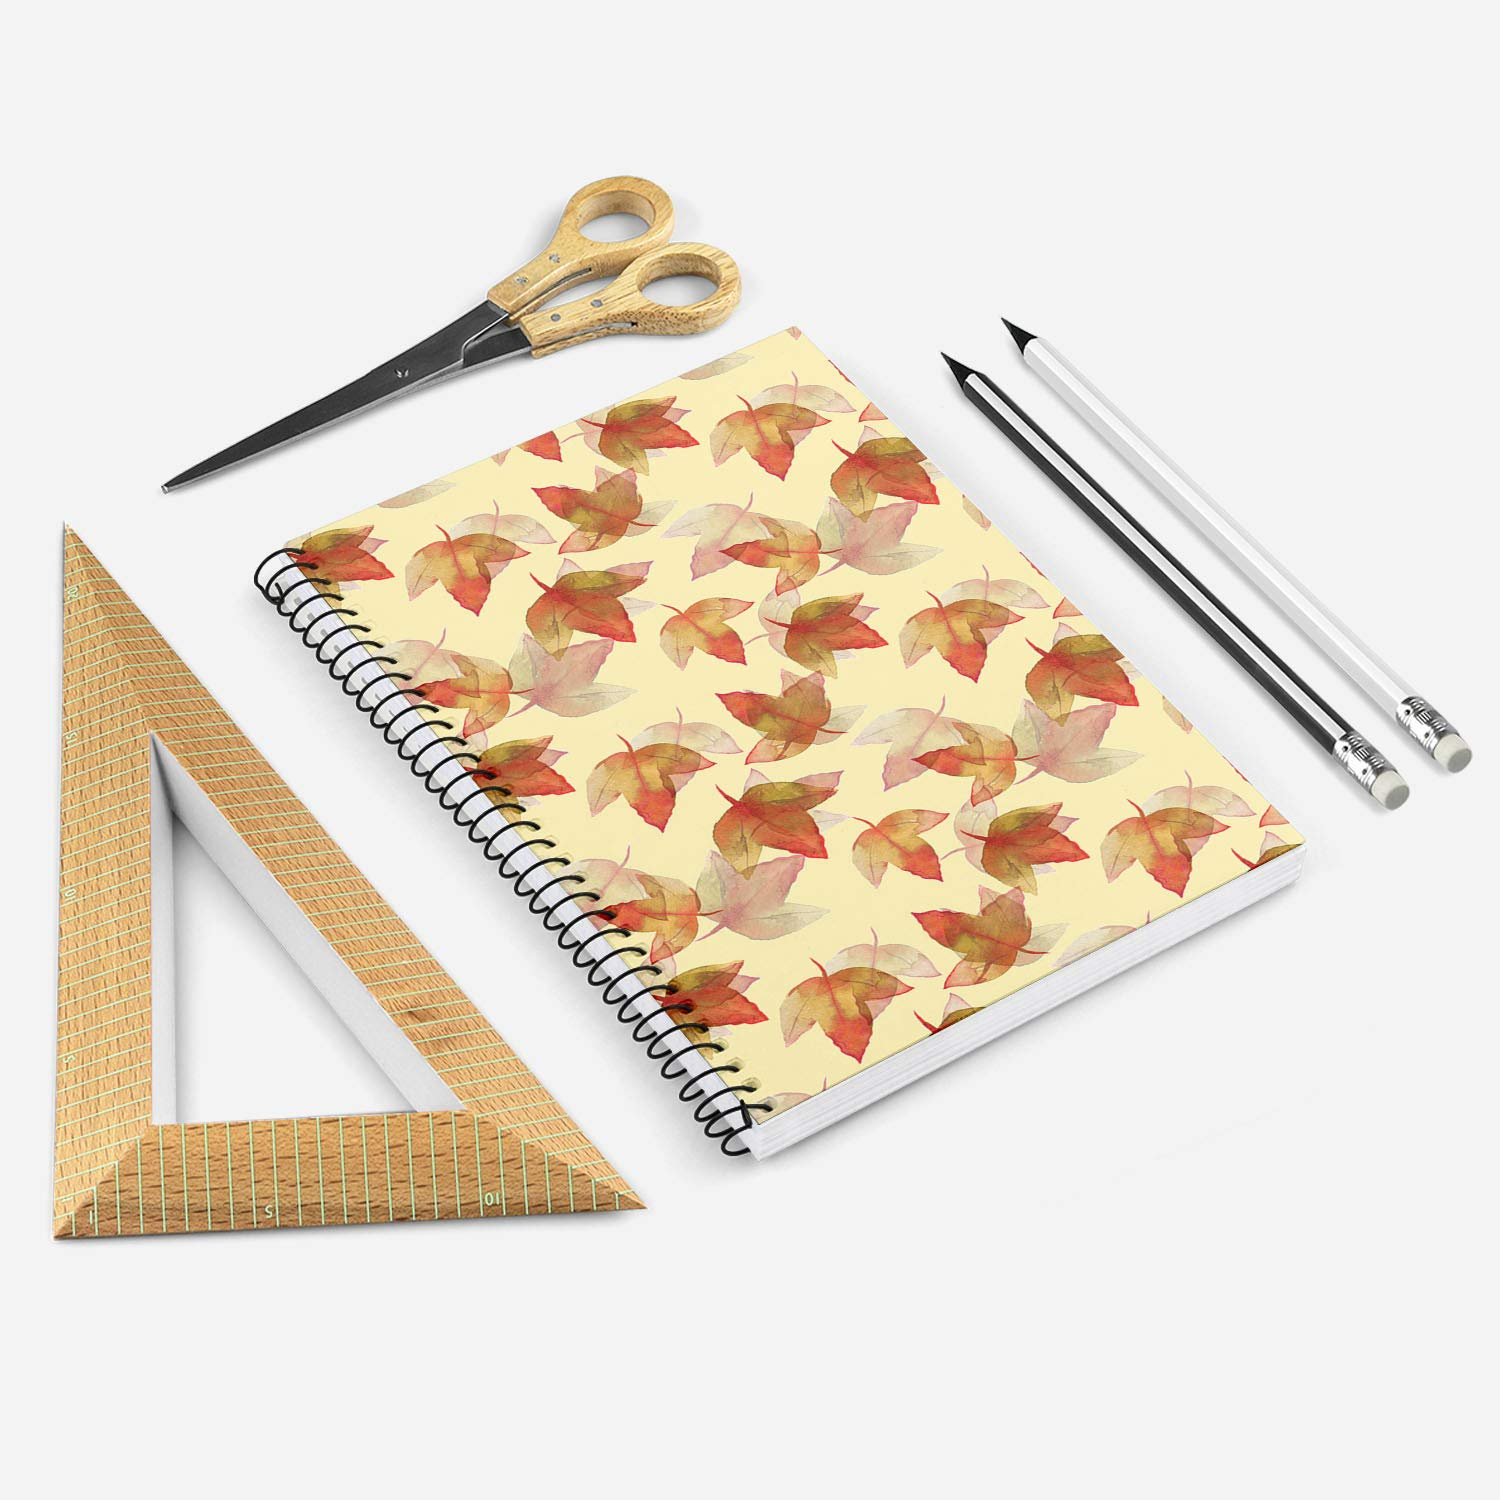 Hardcover 96 Sheets Wood-free Paper Notebook A5 Diary Writing Notepad Gift  #S5